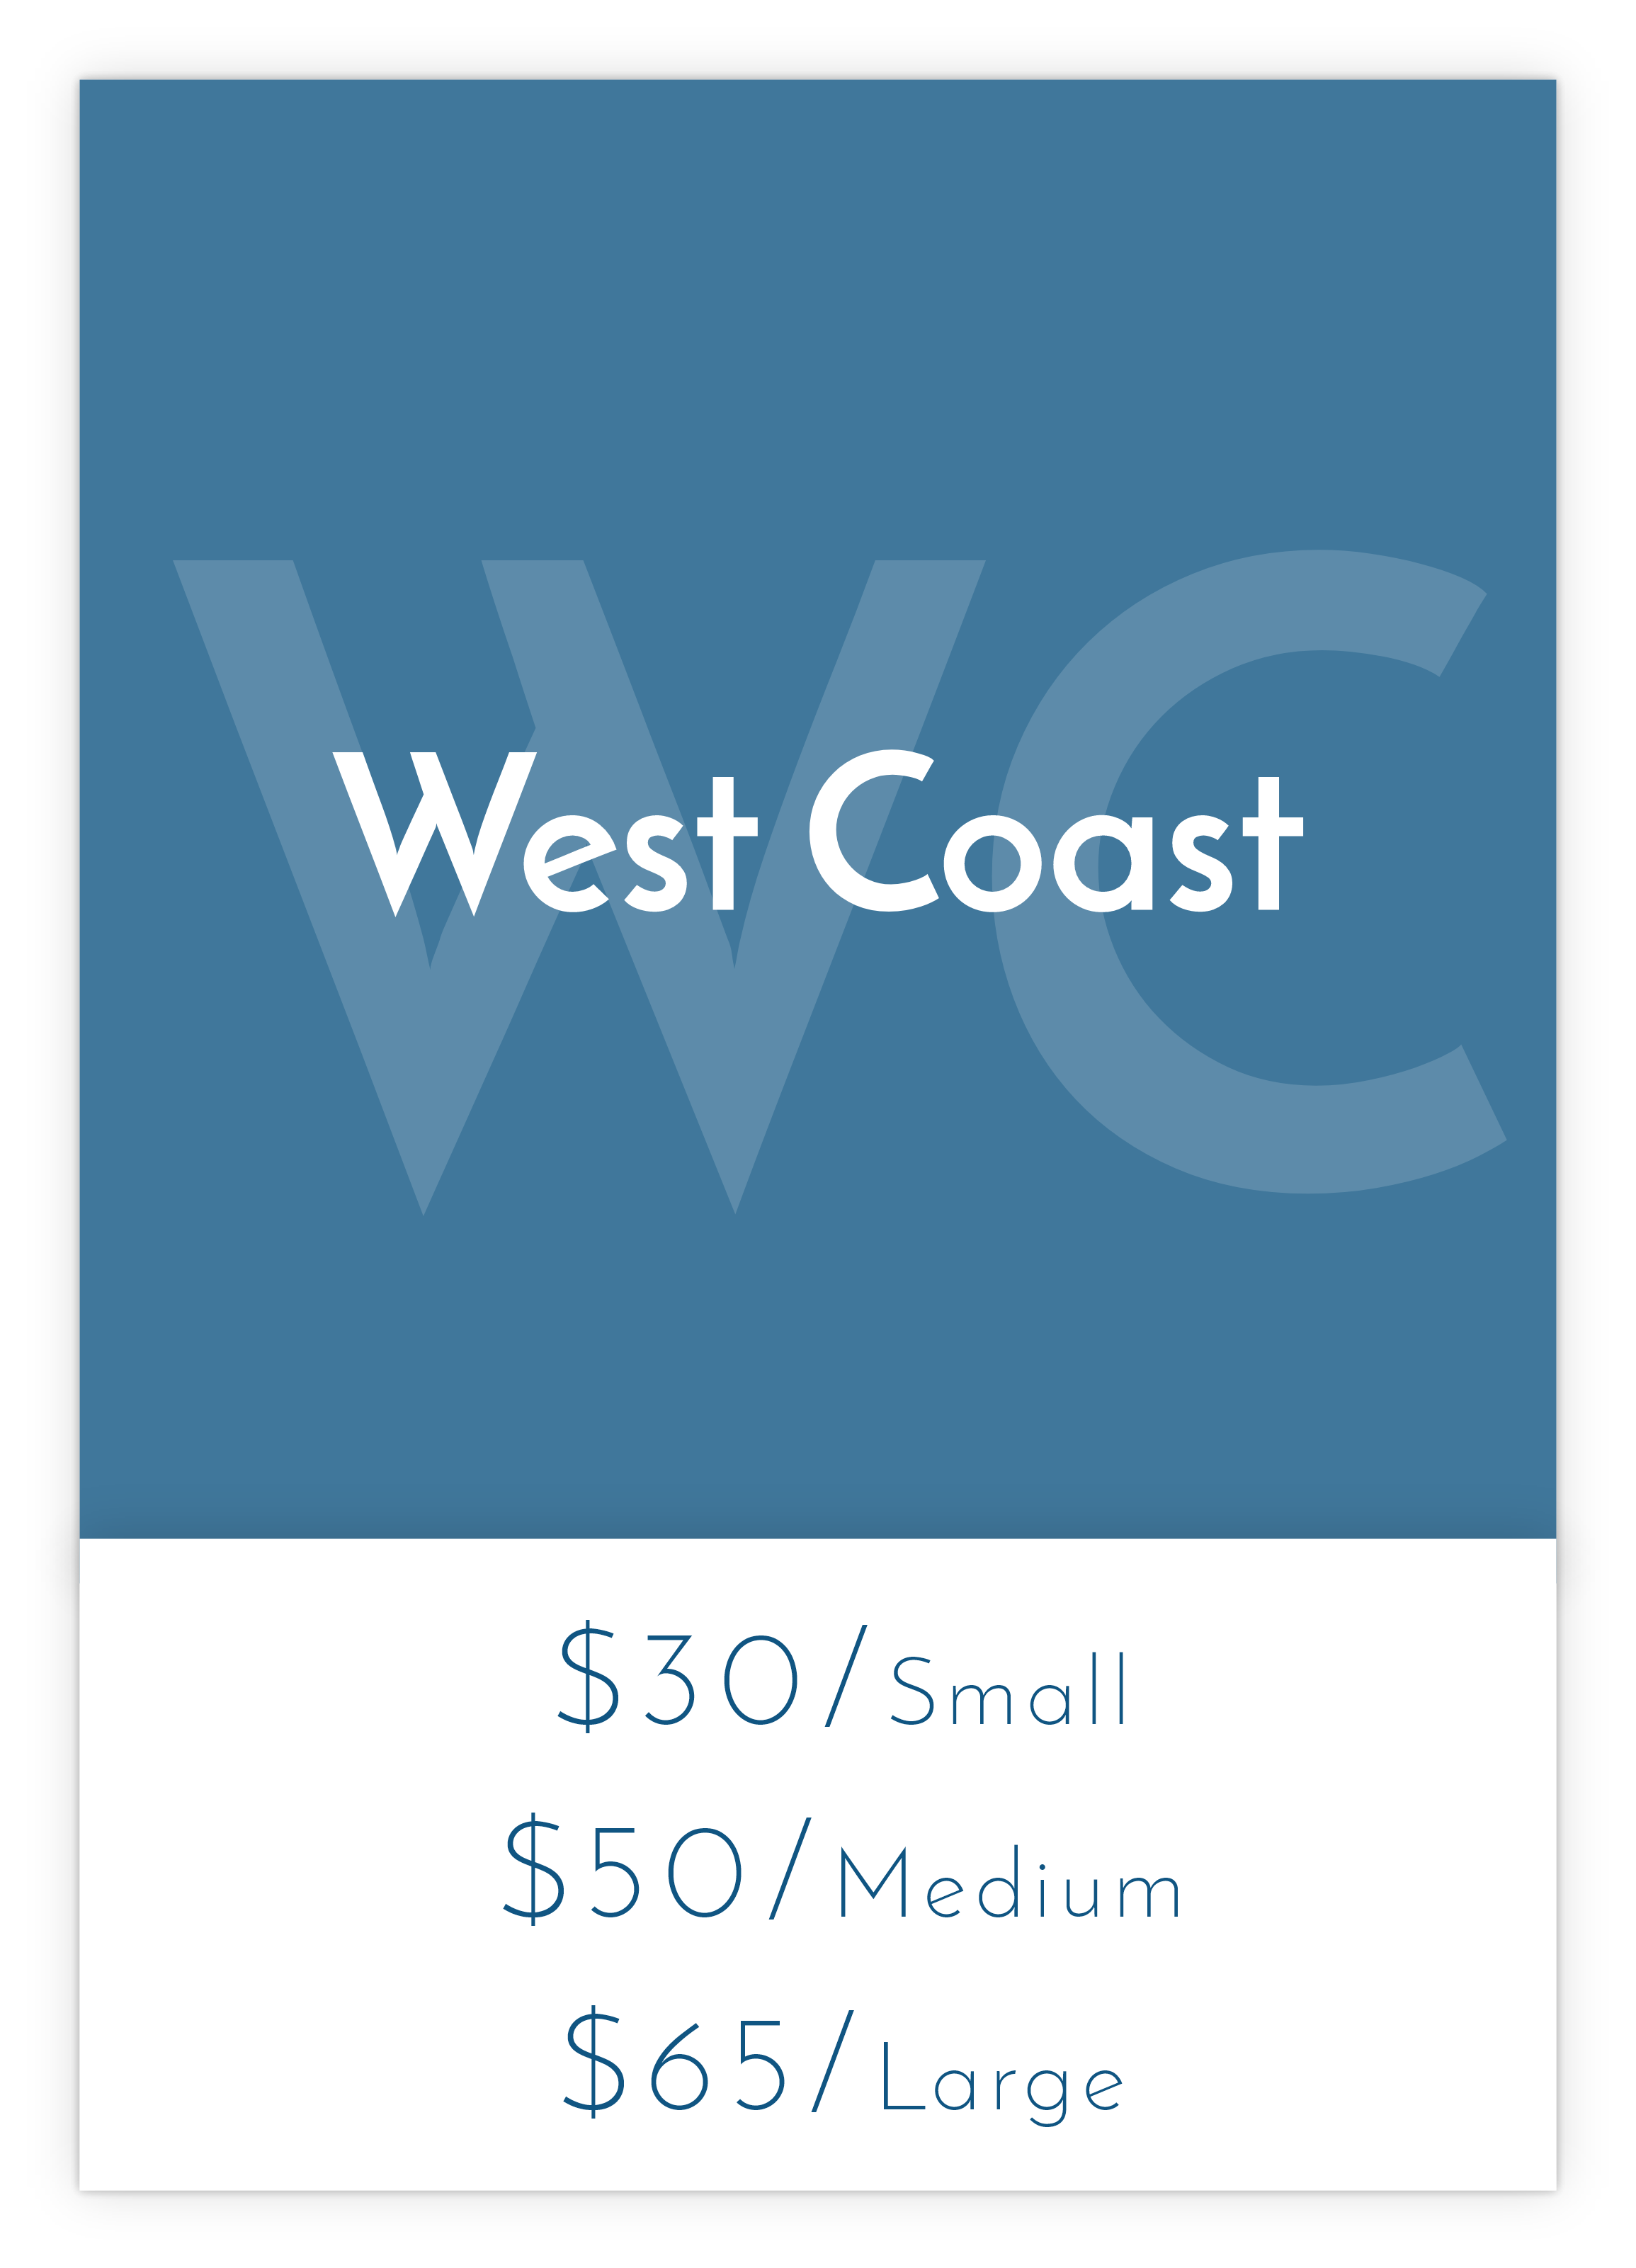 West Coast Shipping